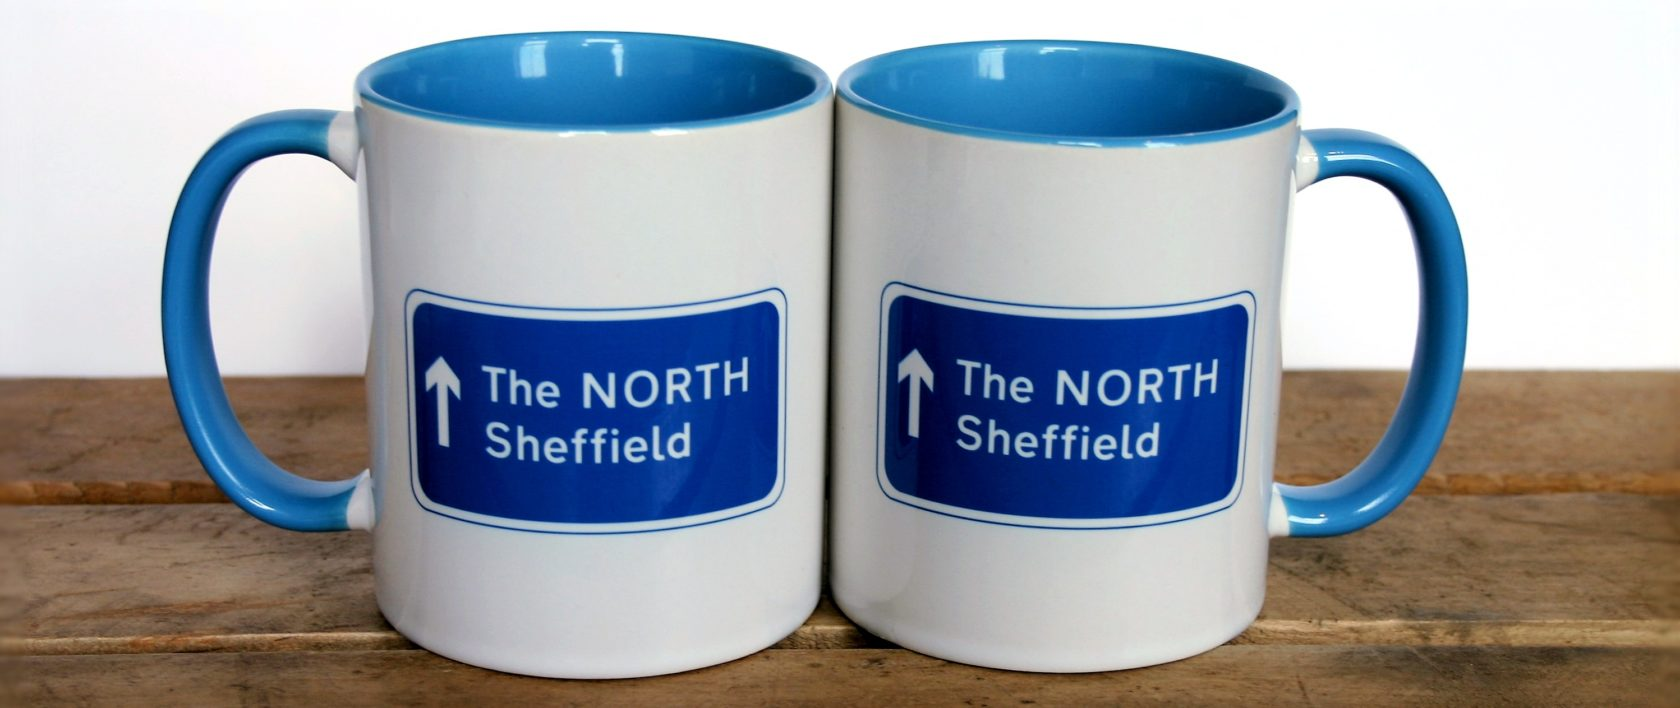 The NORTH - Sheffield